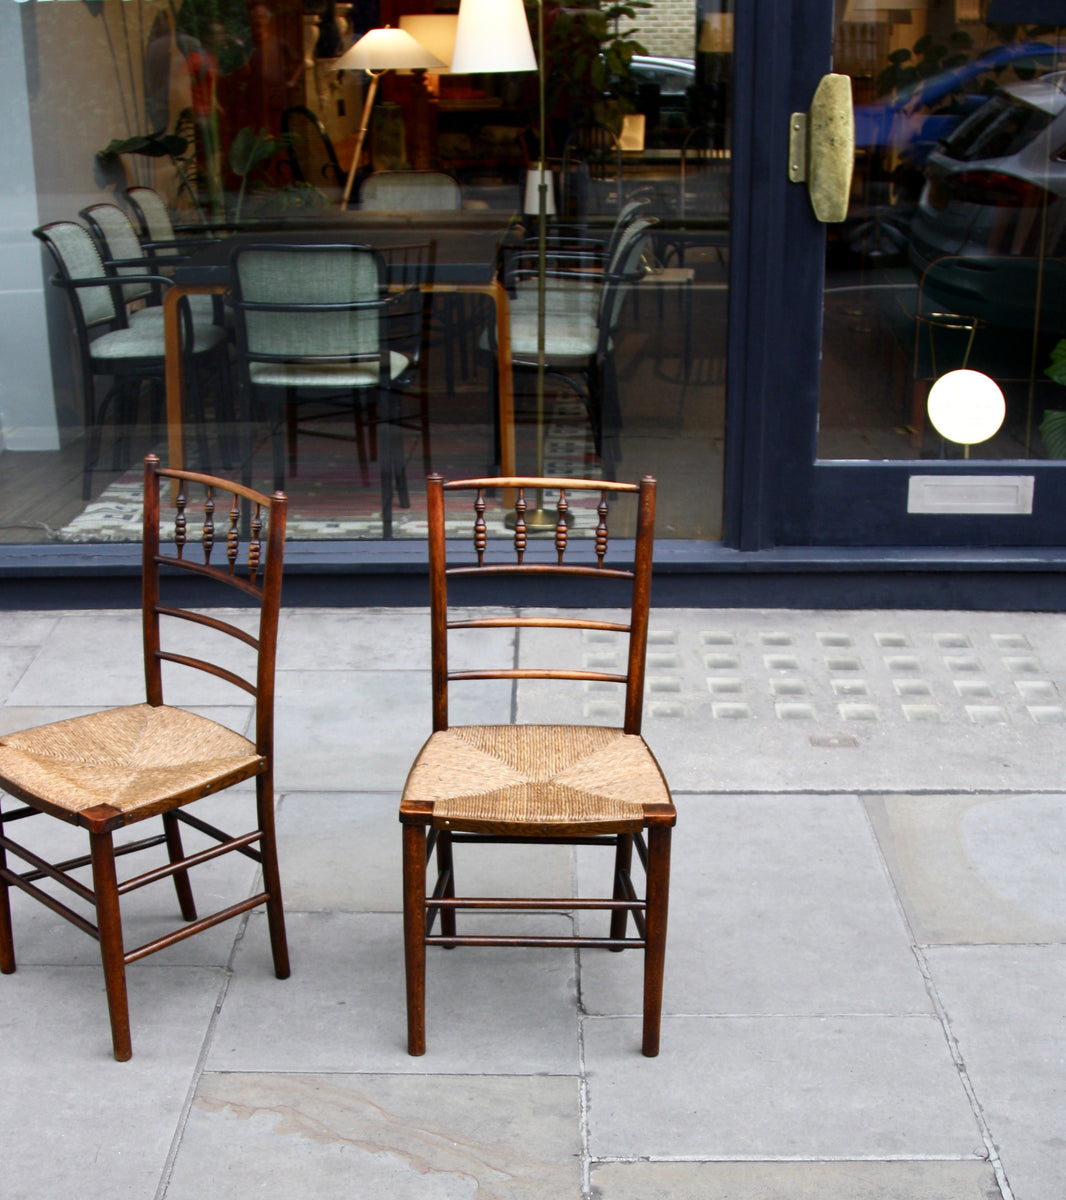 Pair of Arts & Crafts 'Sussex' Chairs <br> by Morris & Co., 1864